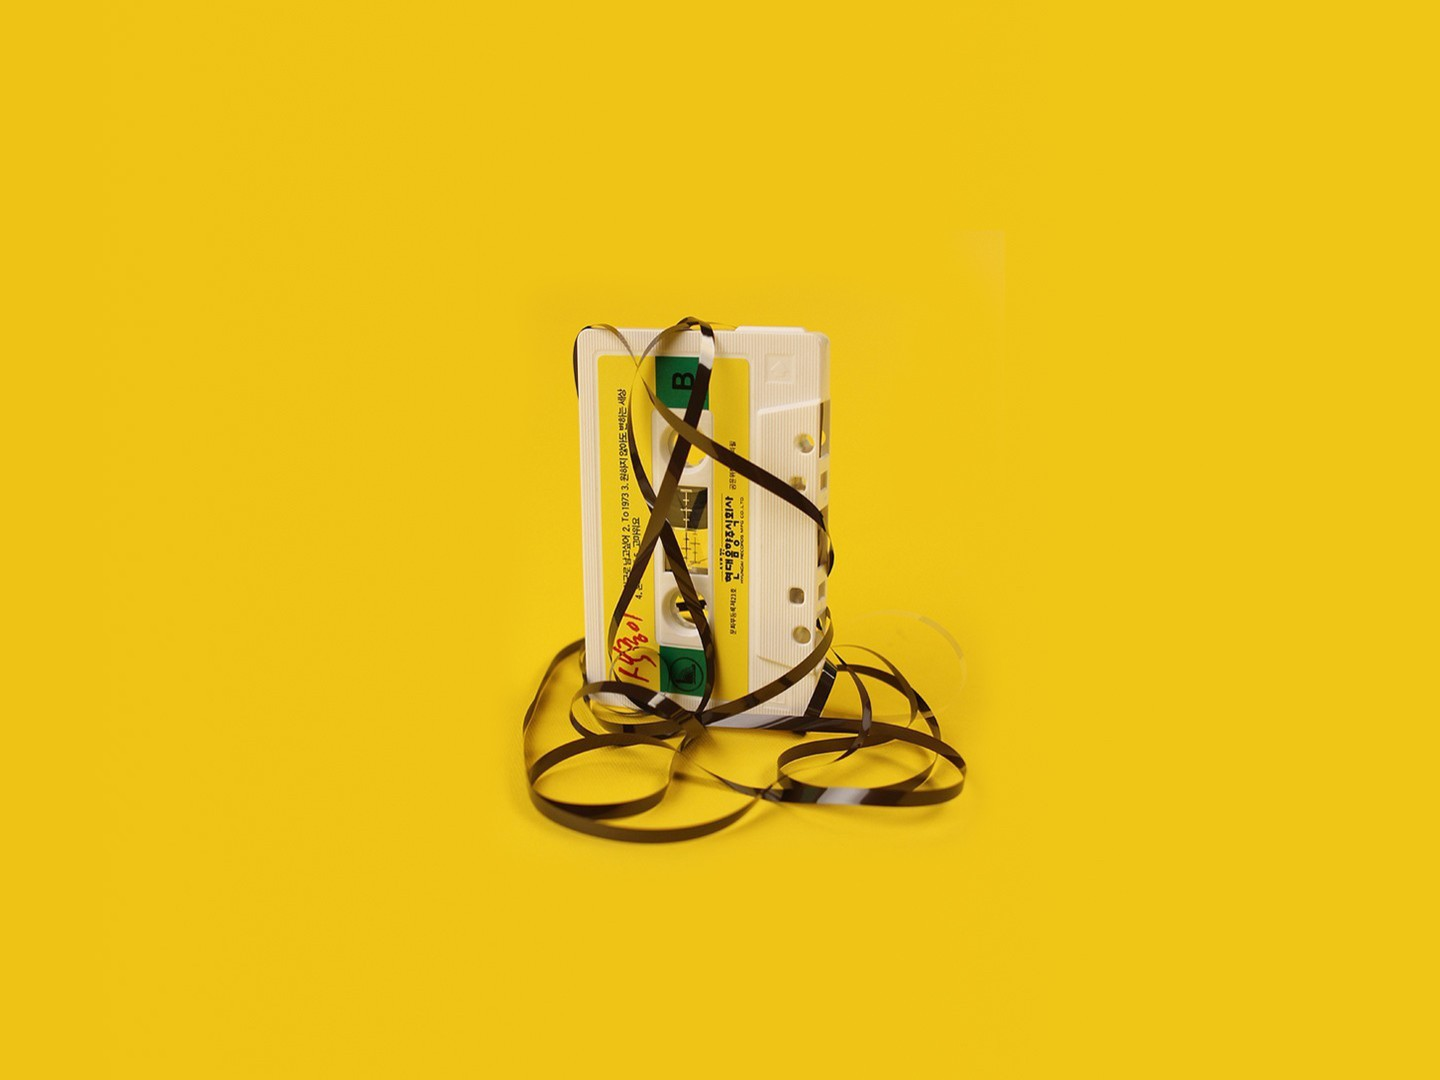 Minimalistic cassette simple background yellow wallpaper ...